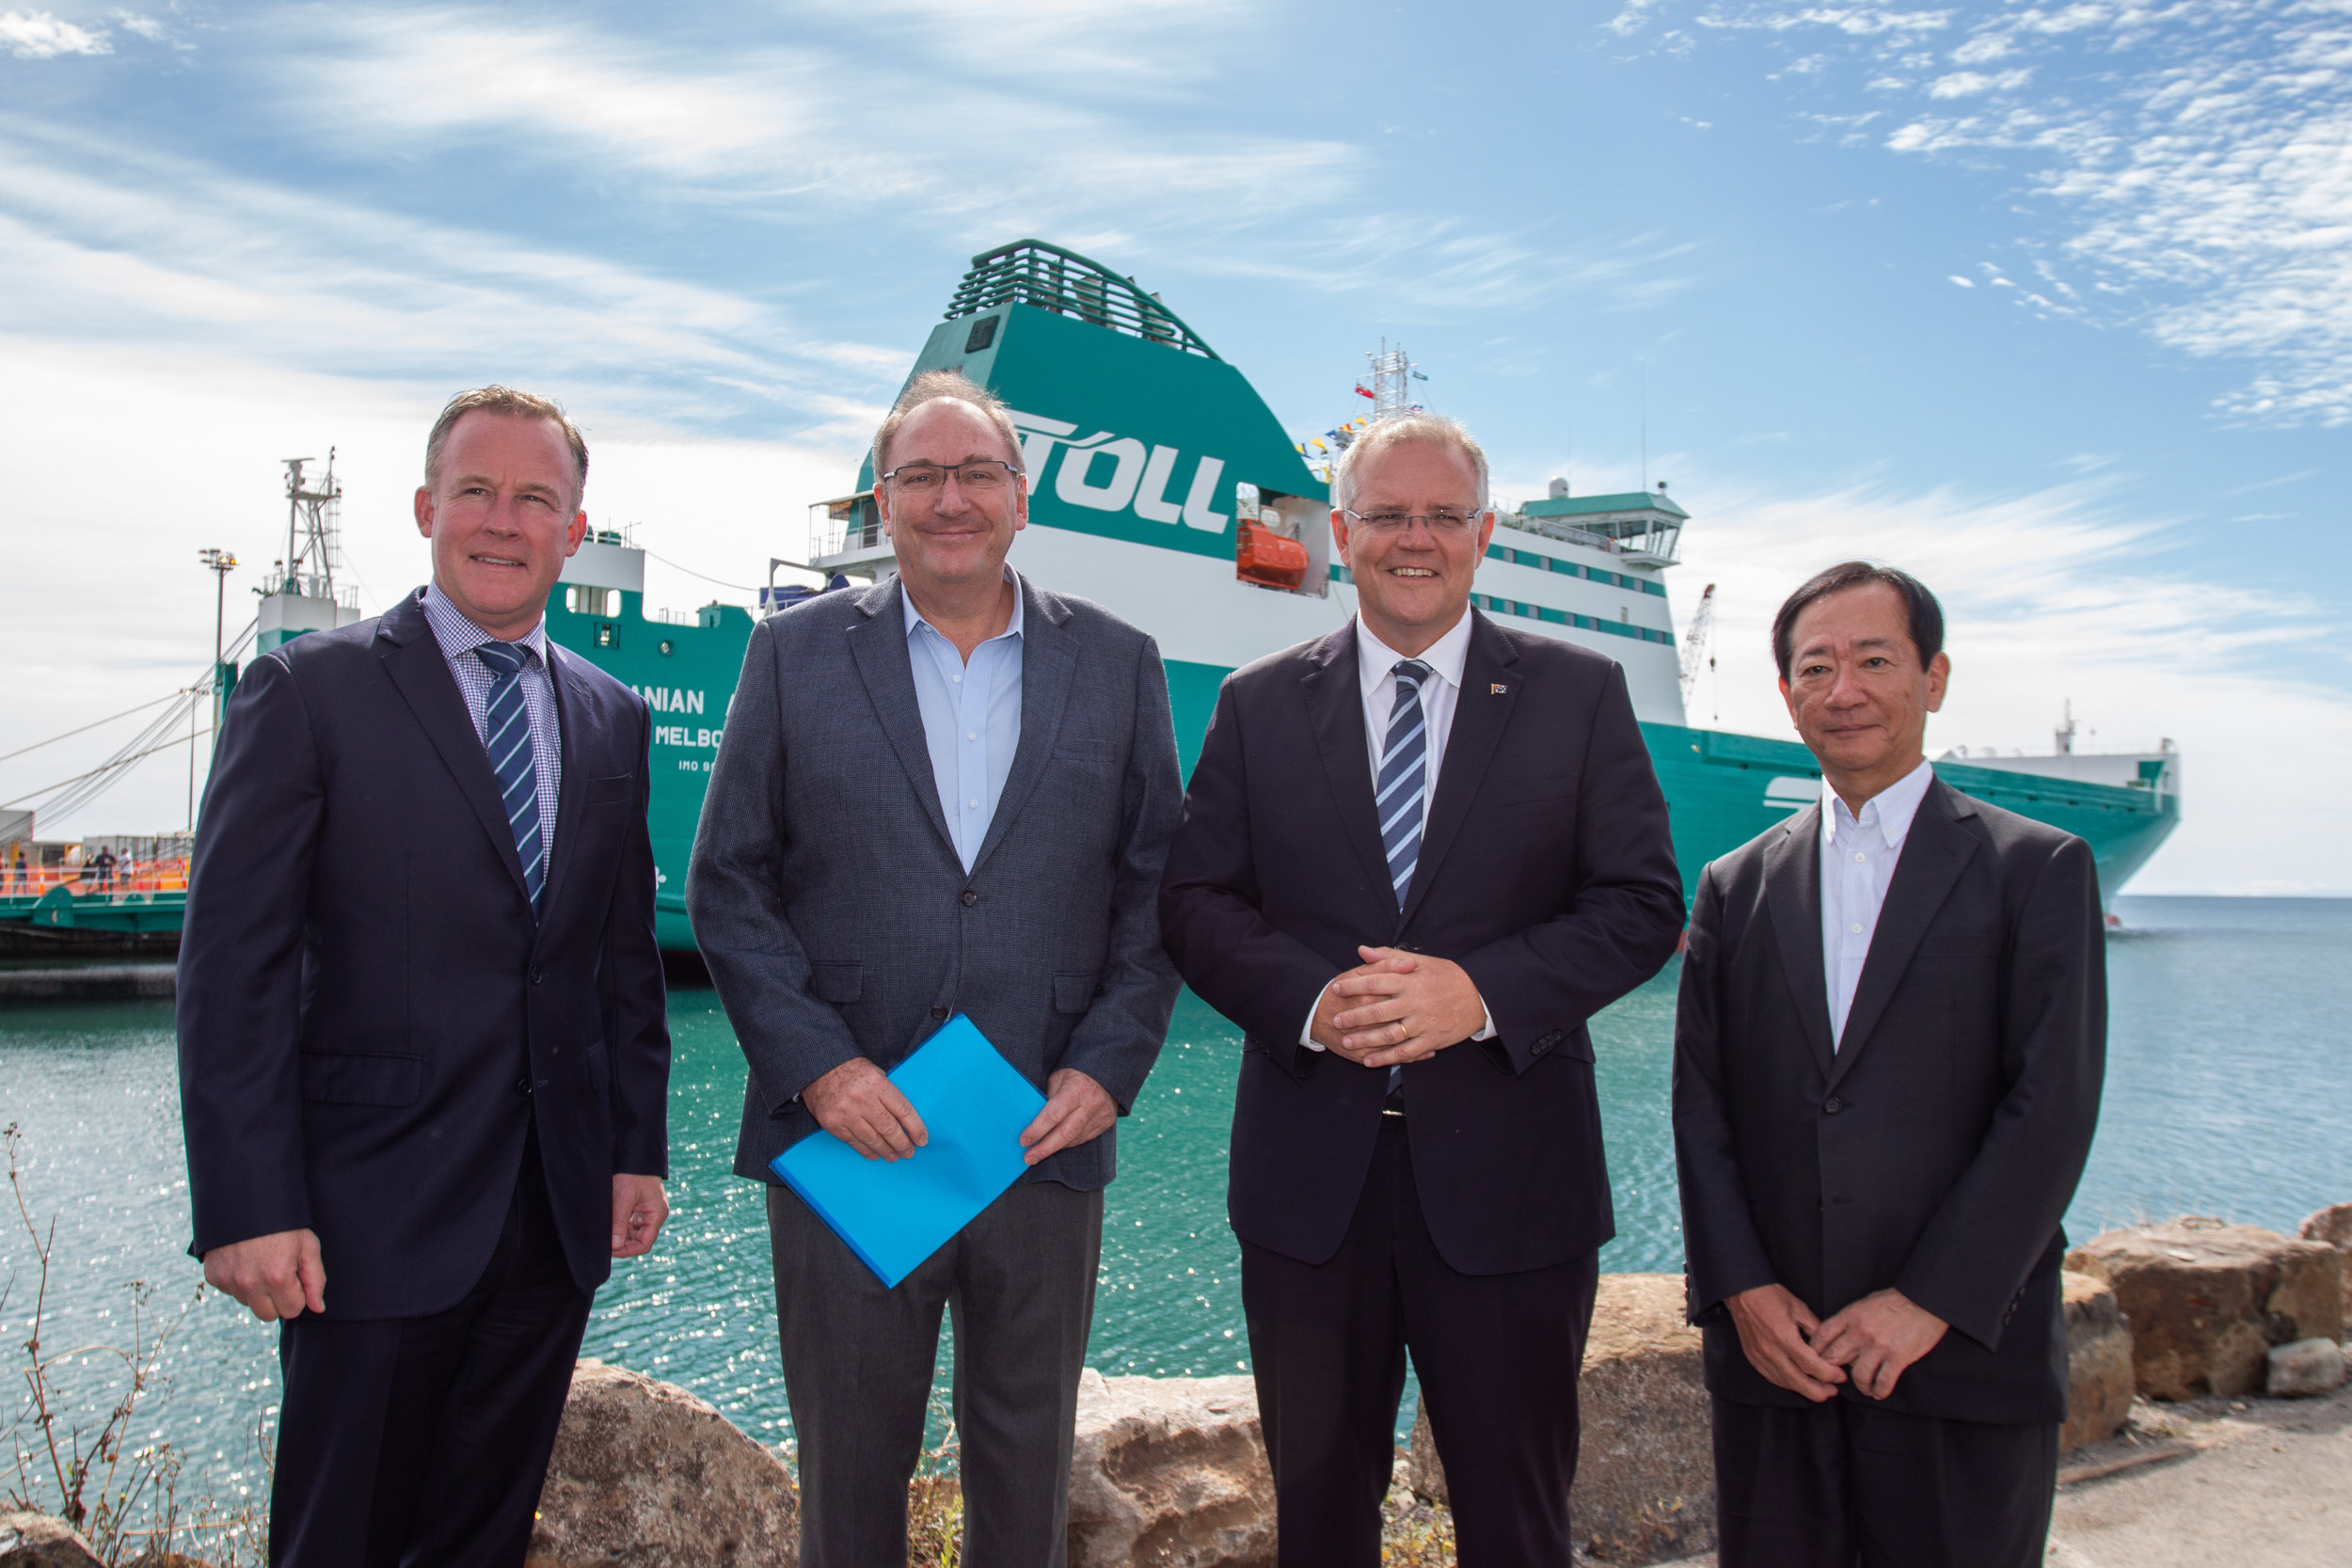 From L-R Will Hodgman, John Mullen (Toll Group), Chairman), Scott Morrison, Taneki Ono (Japan Post First Executive Officer)